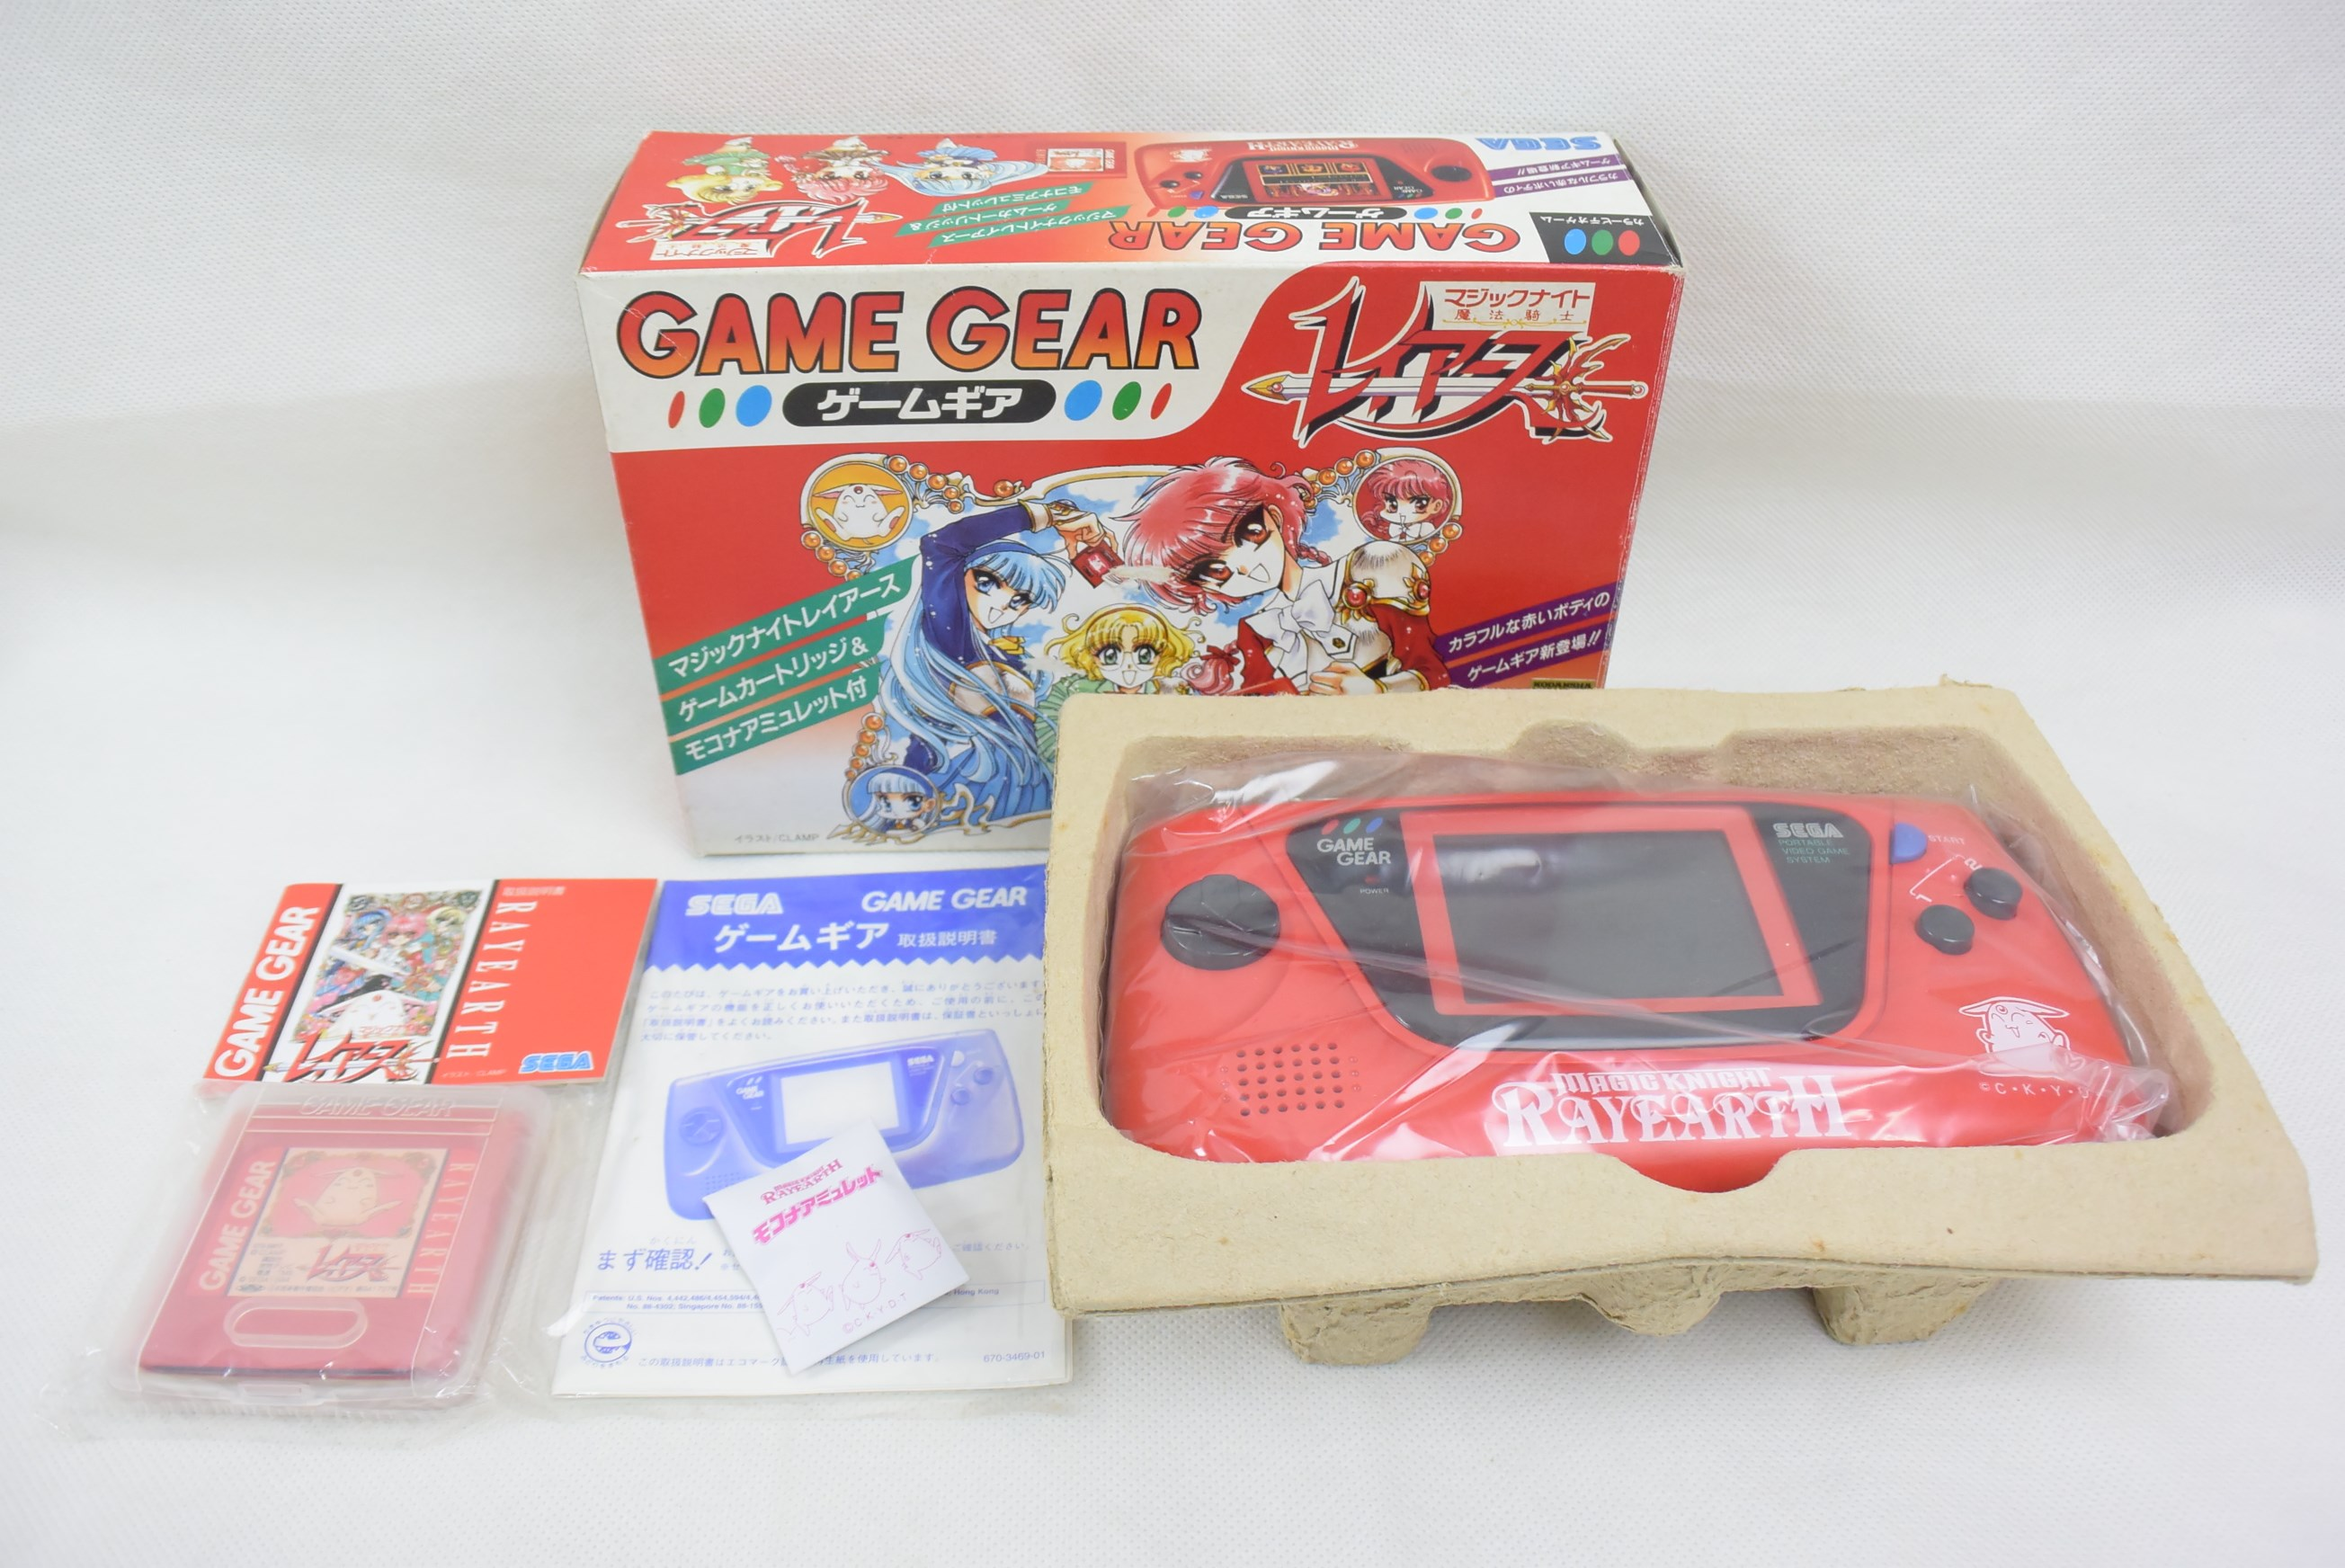 Game Gear Console + MAGIC KNIGHT RAYEARTH Boxed Ref/11917 HGG-3214 ...